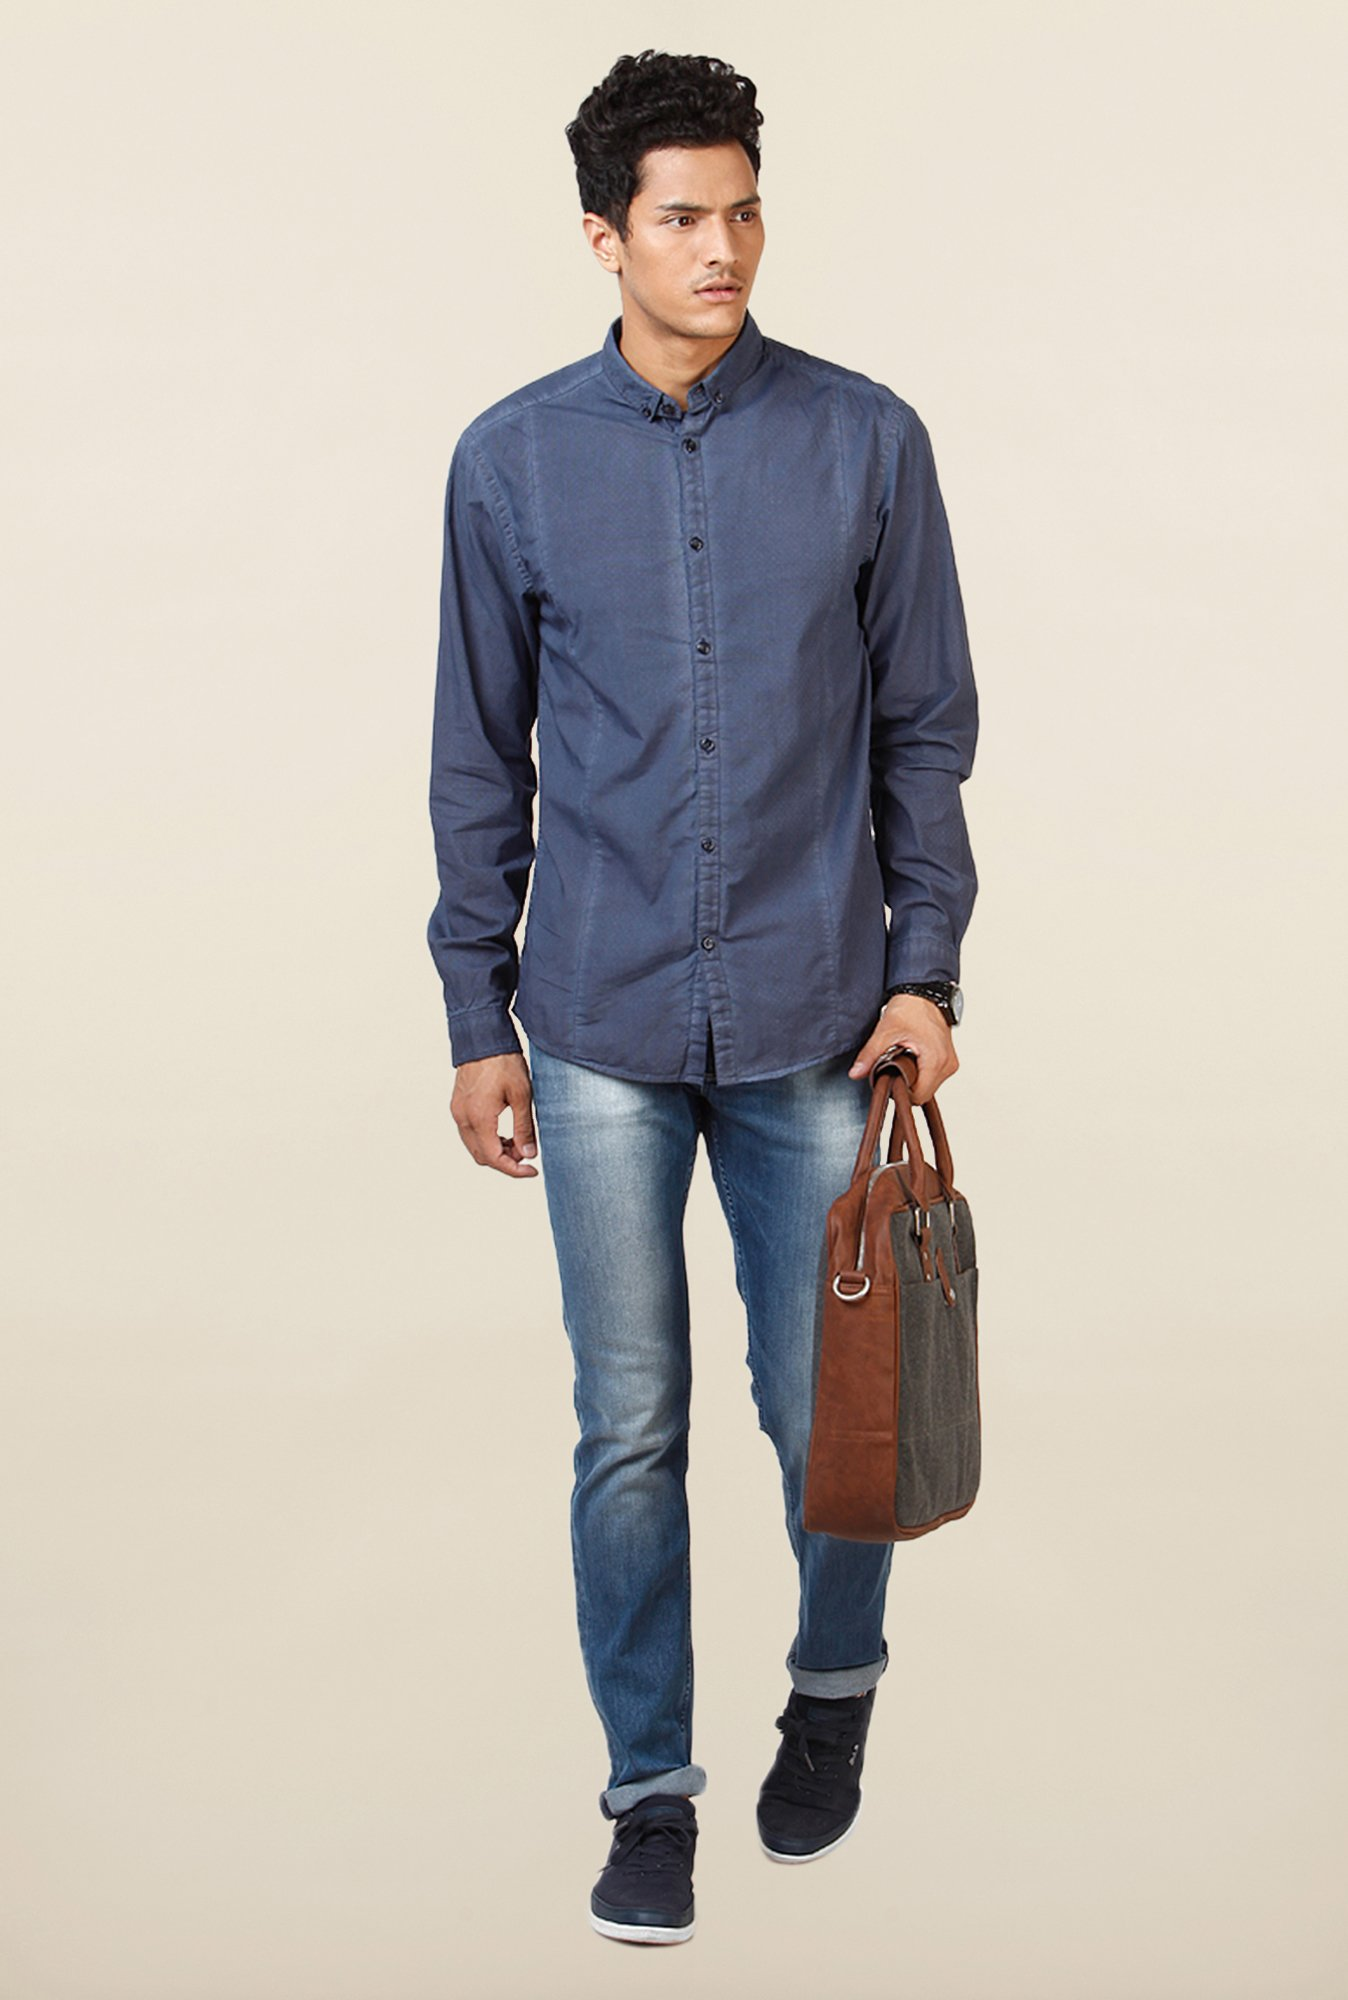 Jack & Jones Blue Self Printed Casual Shirt